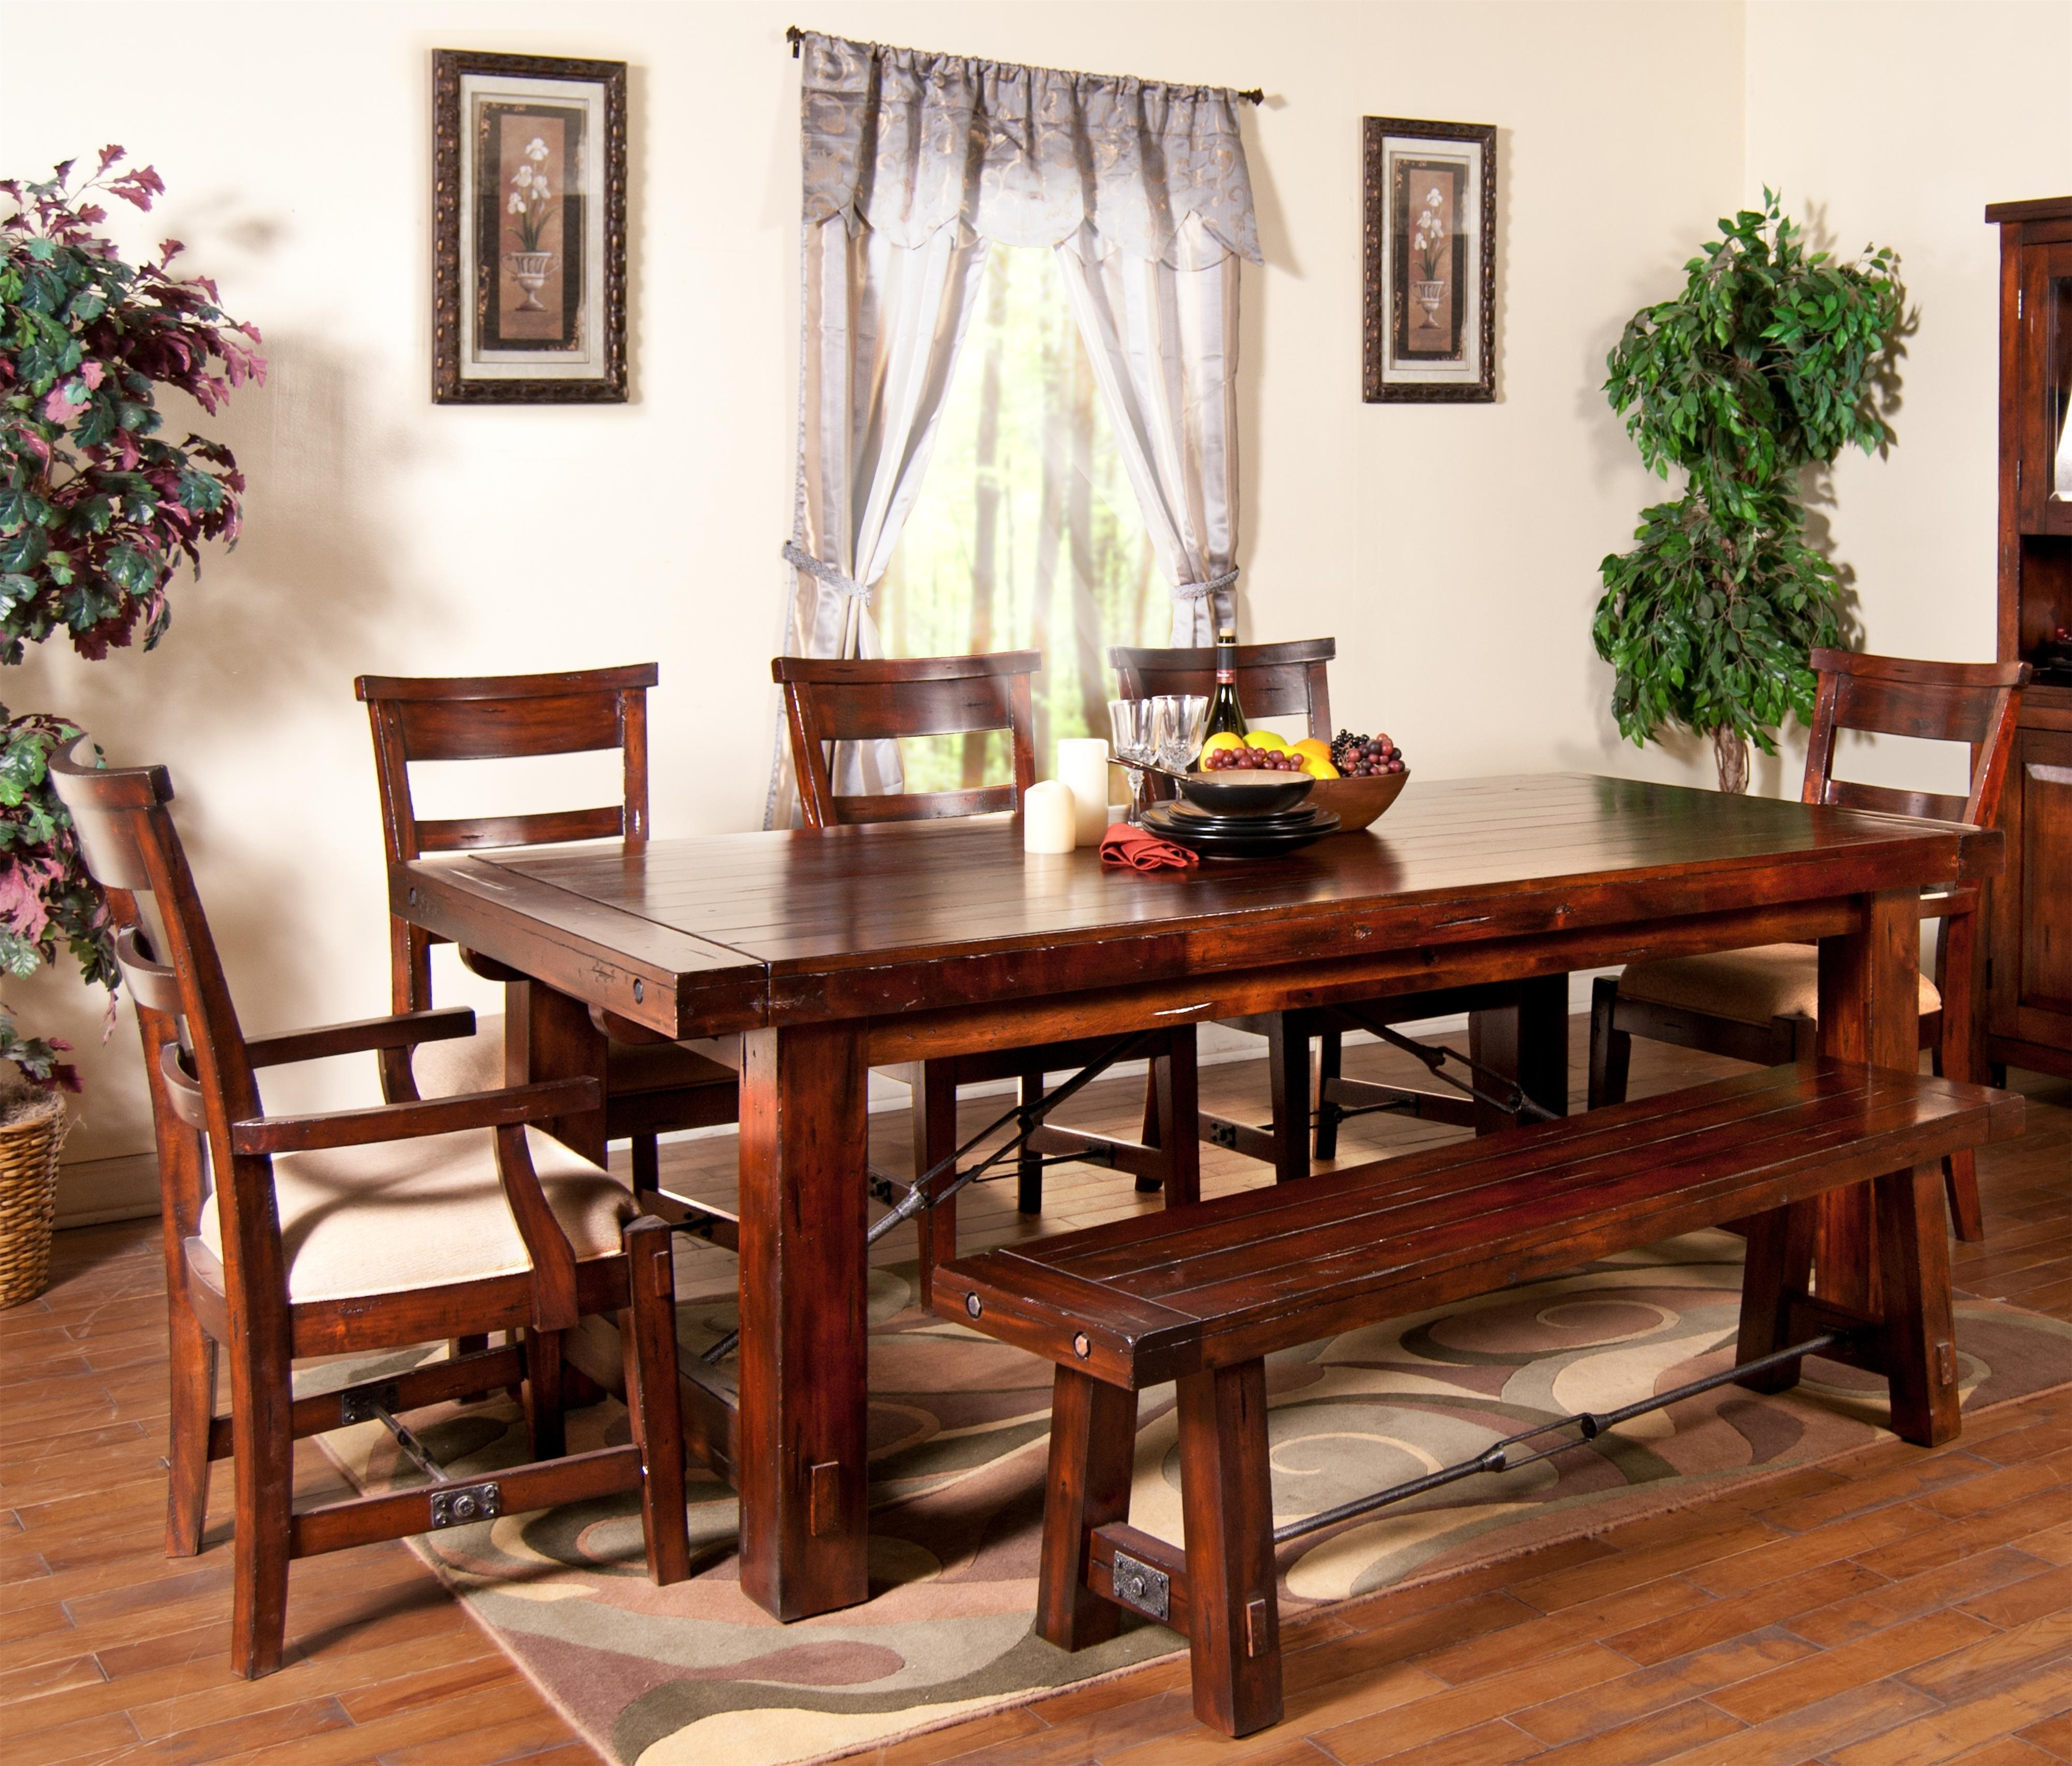 7 Piece Extension Table With Chairs And Bench Setsunny Designs Throughout Newest Craftsman 7 Piece Rectangle Extension Dining Sets With Uph Side Chairs (Photo 5 of 20)